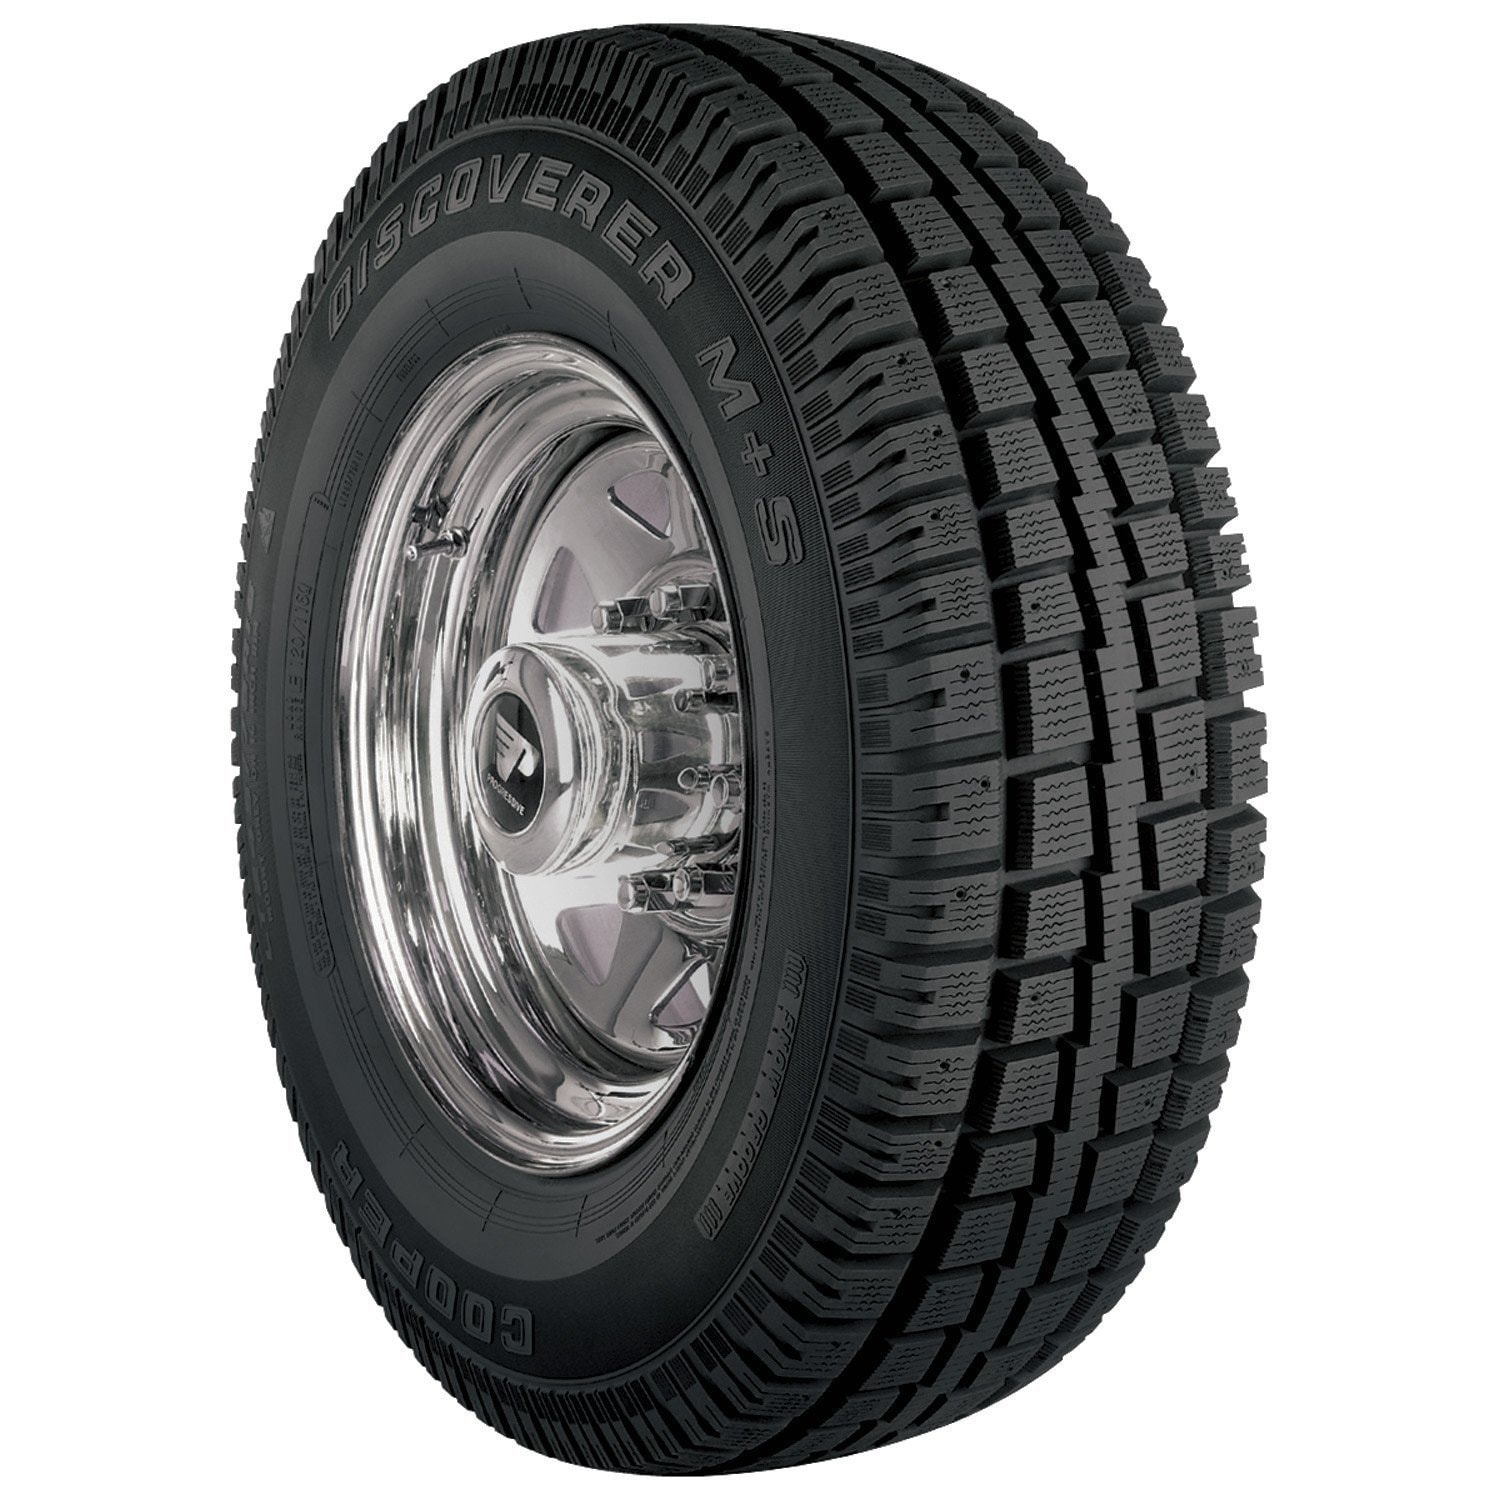 COOPER Discoverer M+S Winter Tire - 245/70R16 107S (Black)